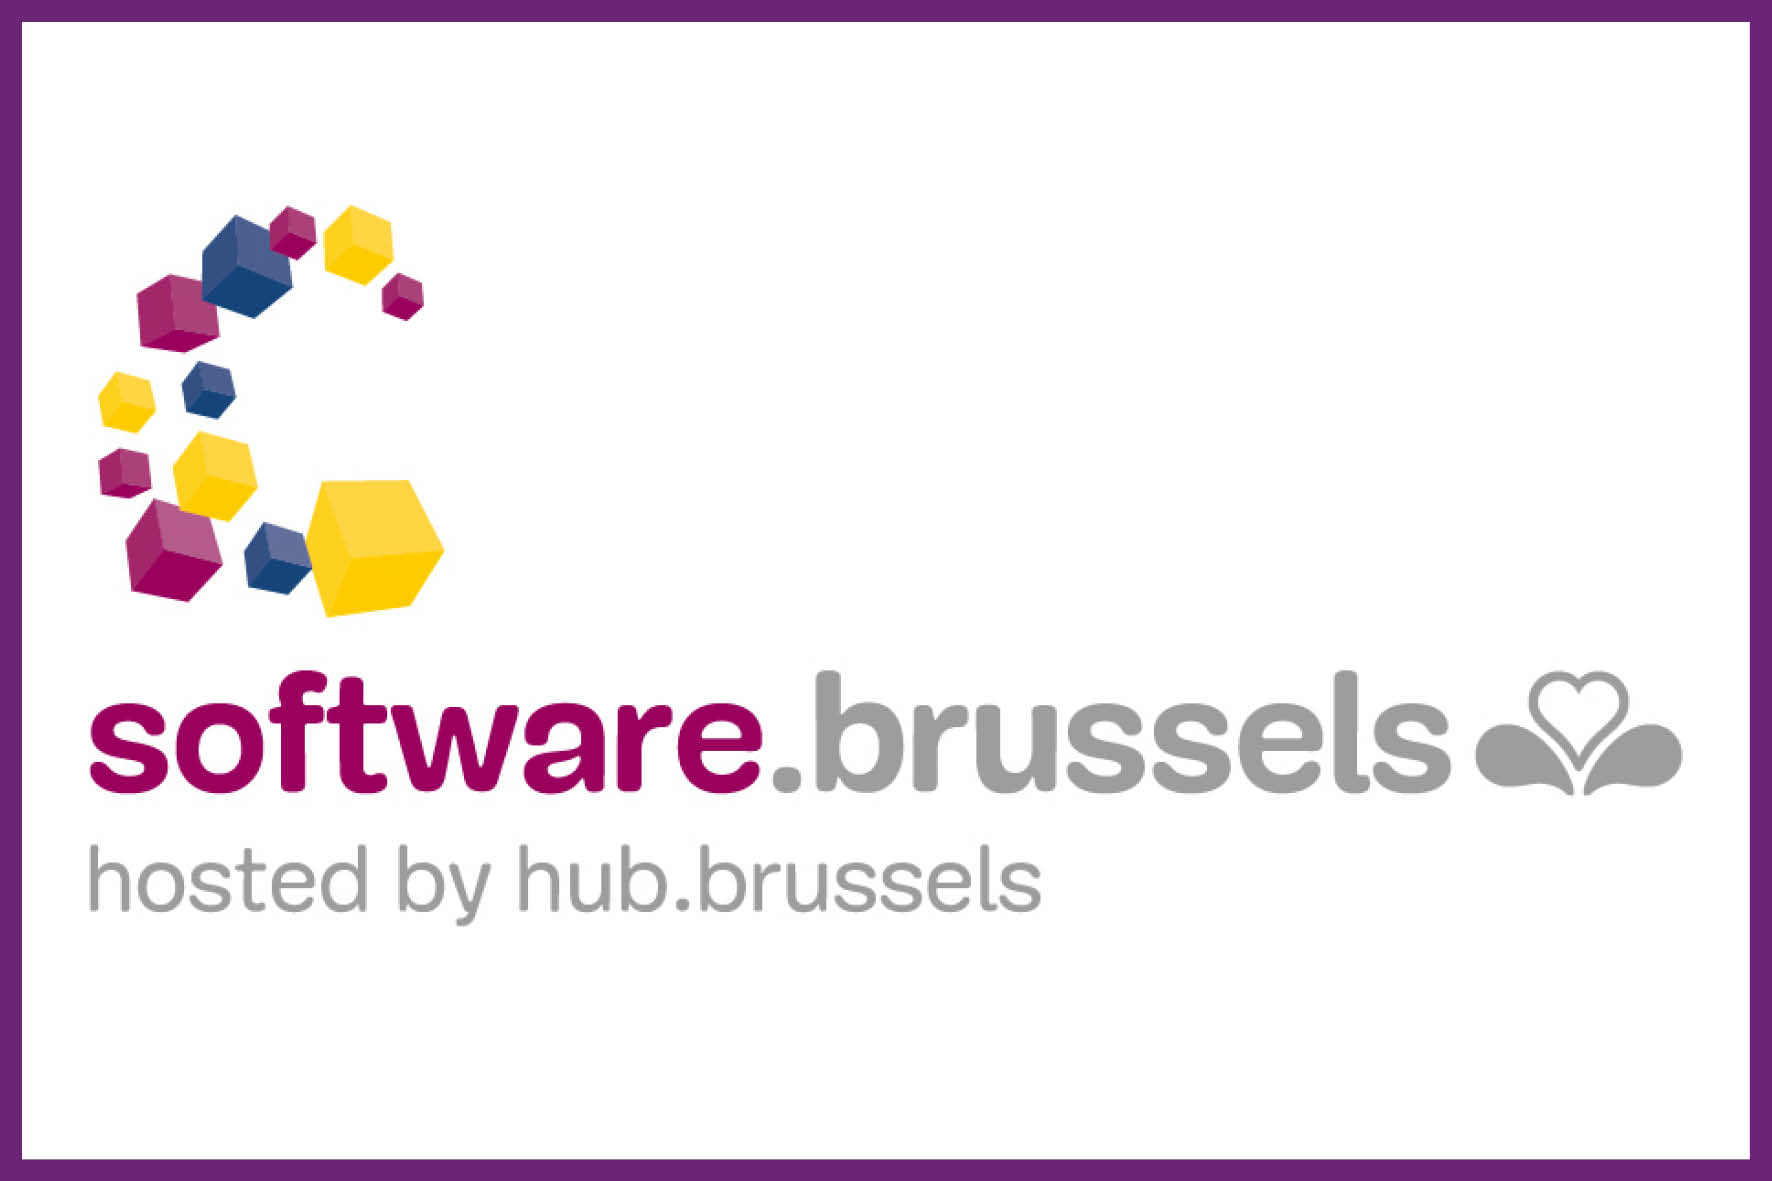 security-forum-software-hub